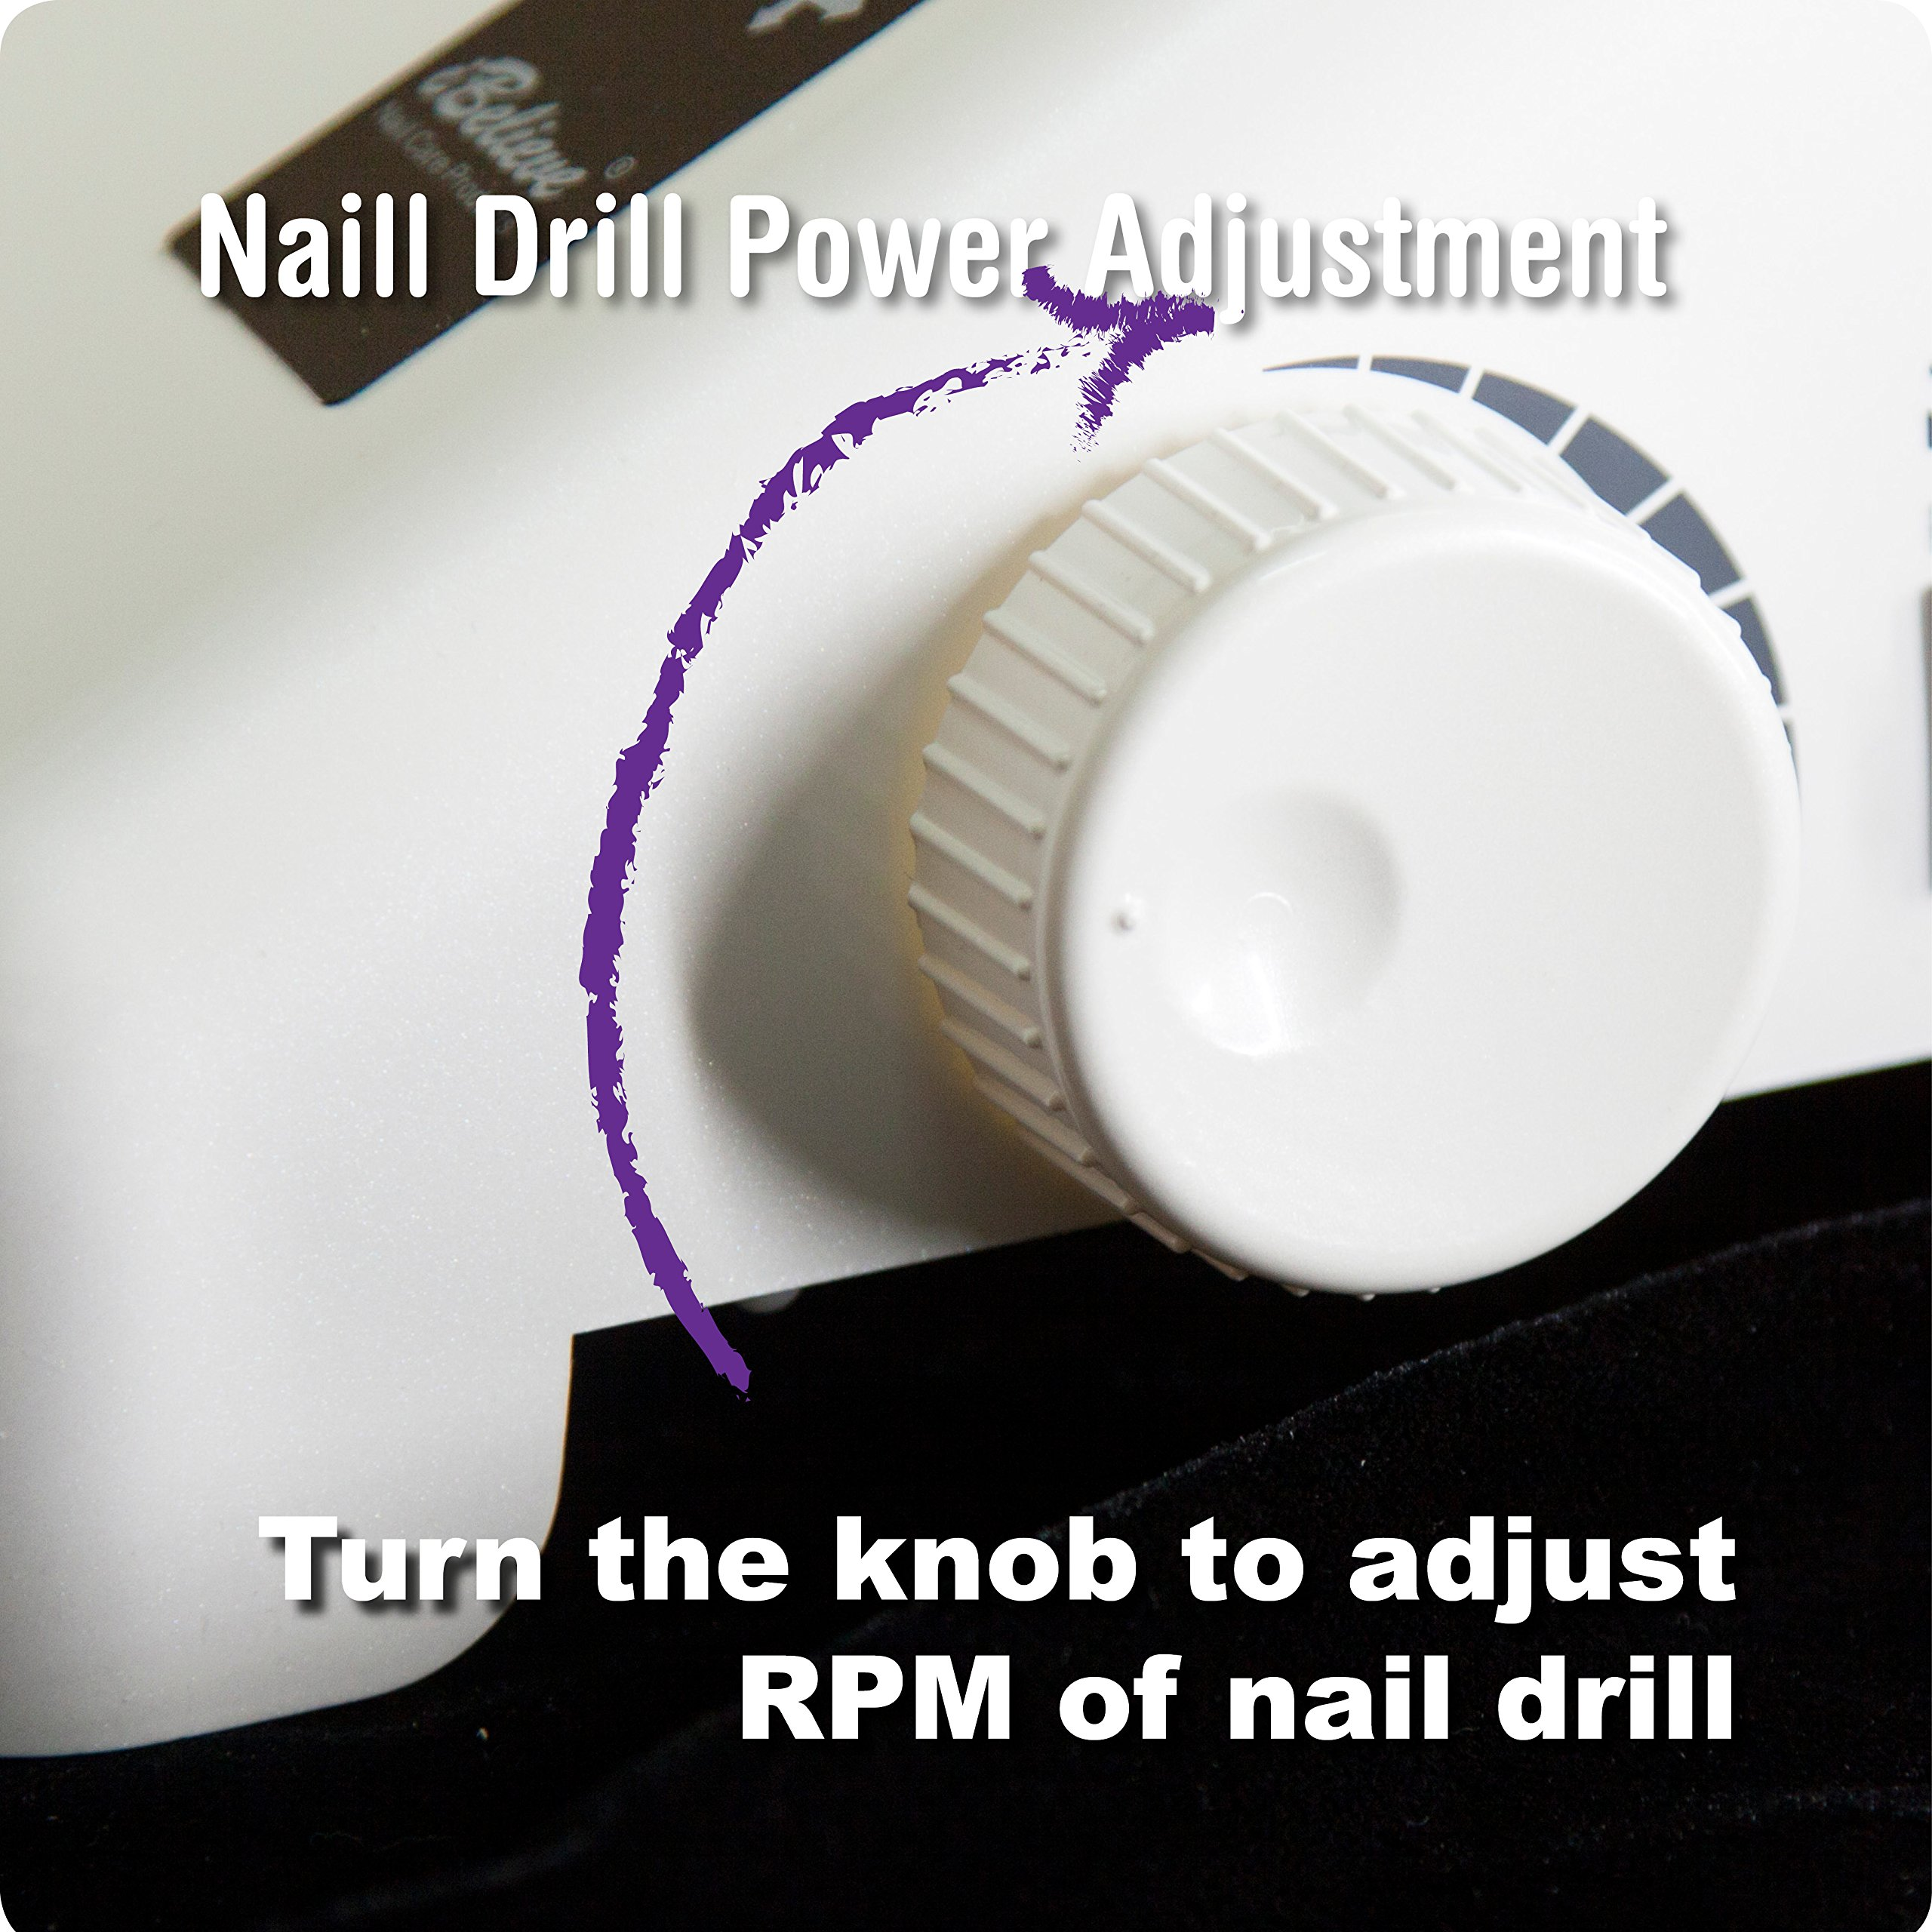 35000 RPM Nail Drill Dust Collector Desk Lamp 3-in-1 machine for salon by O.S.S.O Gel (Image #9)